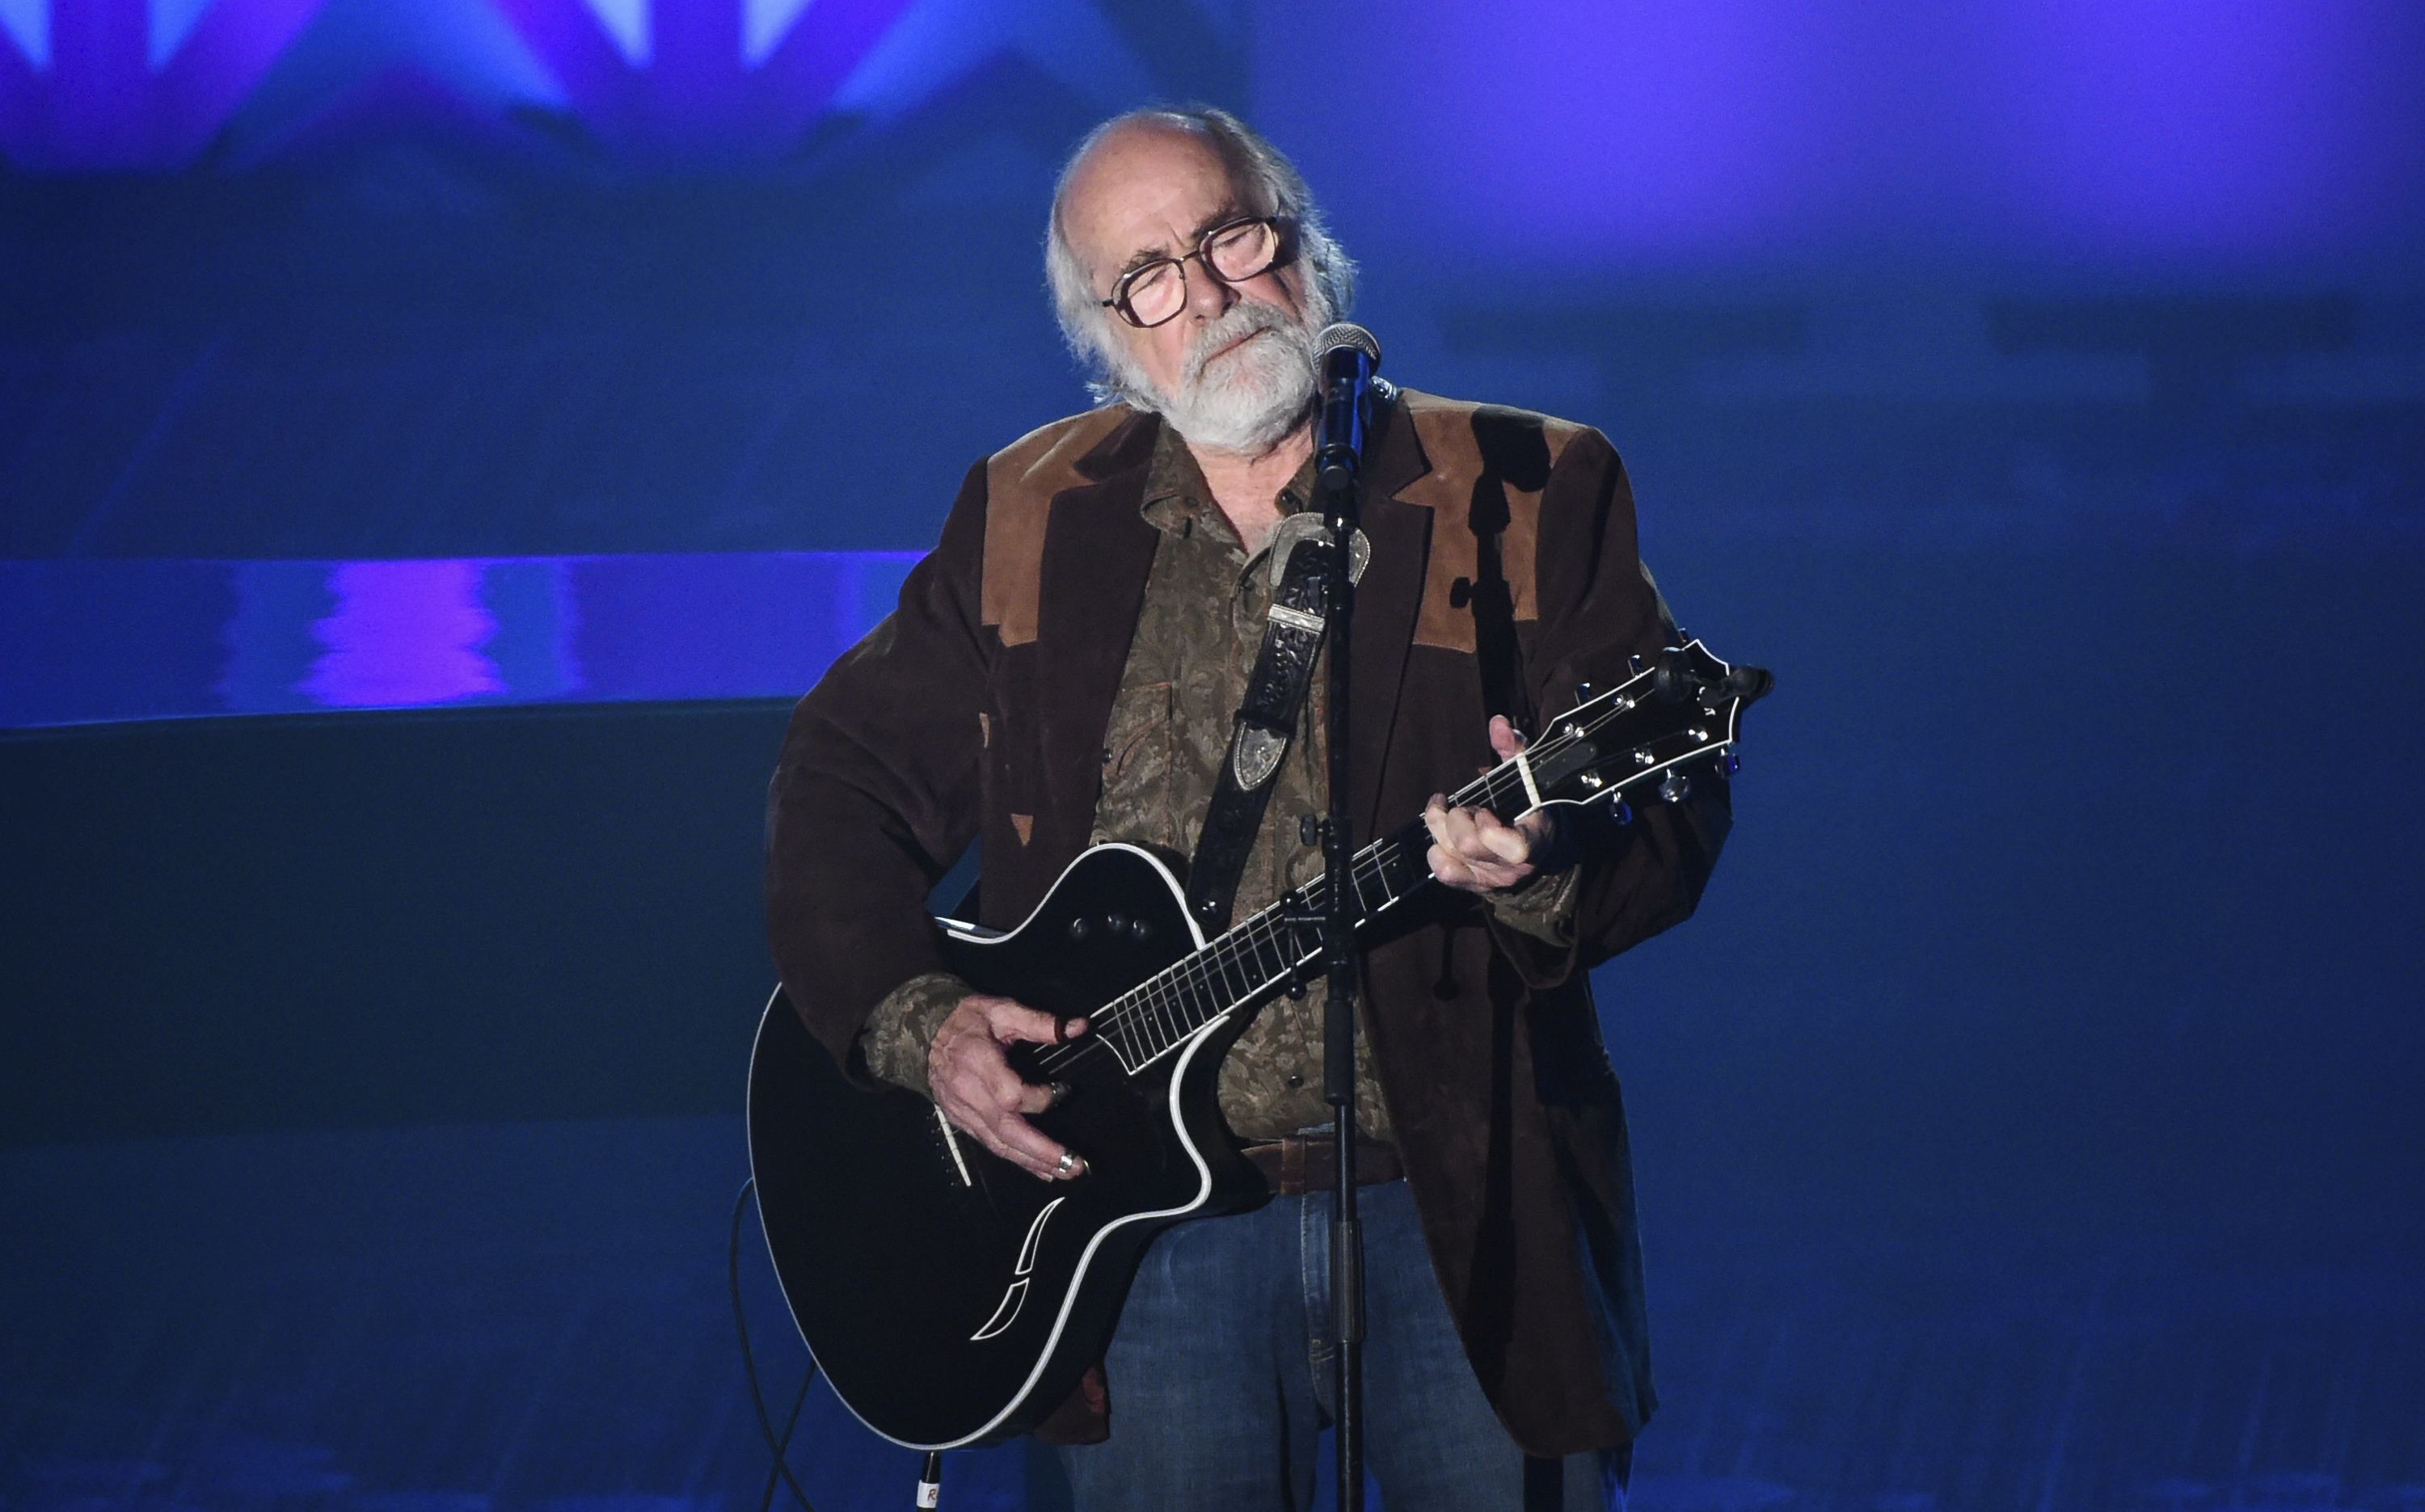 The Grateful Dead's Robert Hunter performs at the 46th Annual Songwriters Hall Of Fame Induction and Awards Gala in New York in 2015.